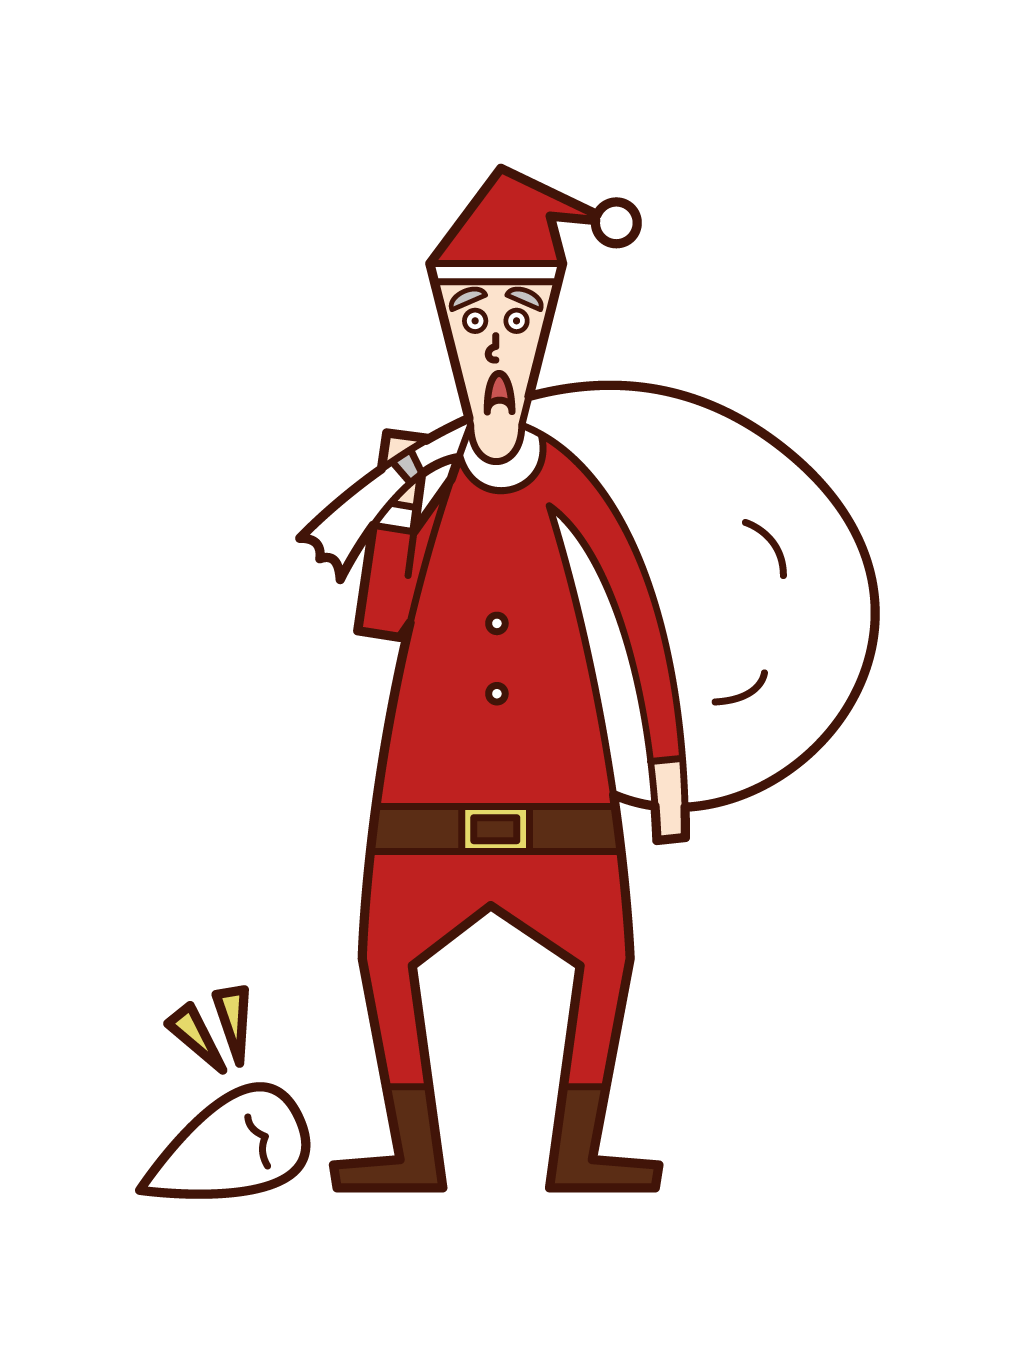 Illustration of Santa Claus (man) who dropped the axe